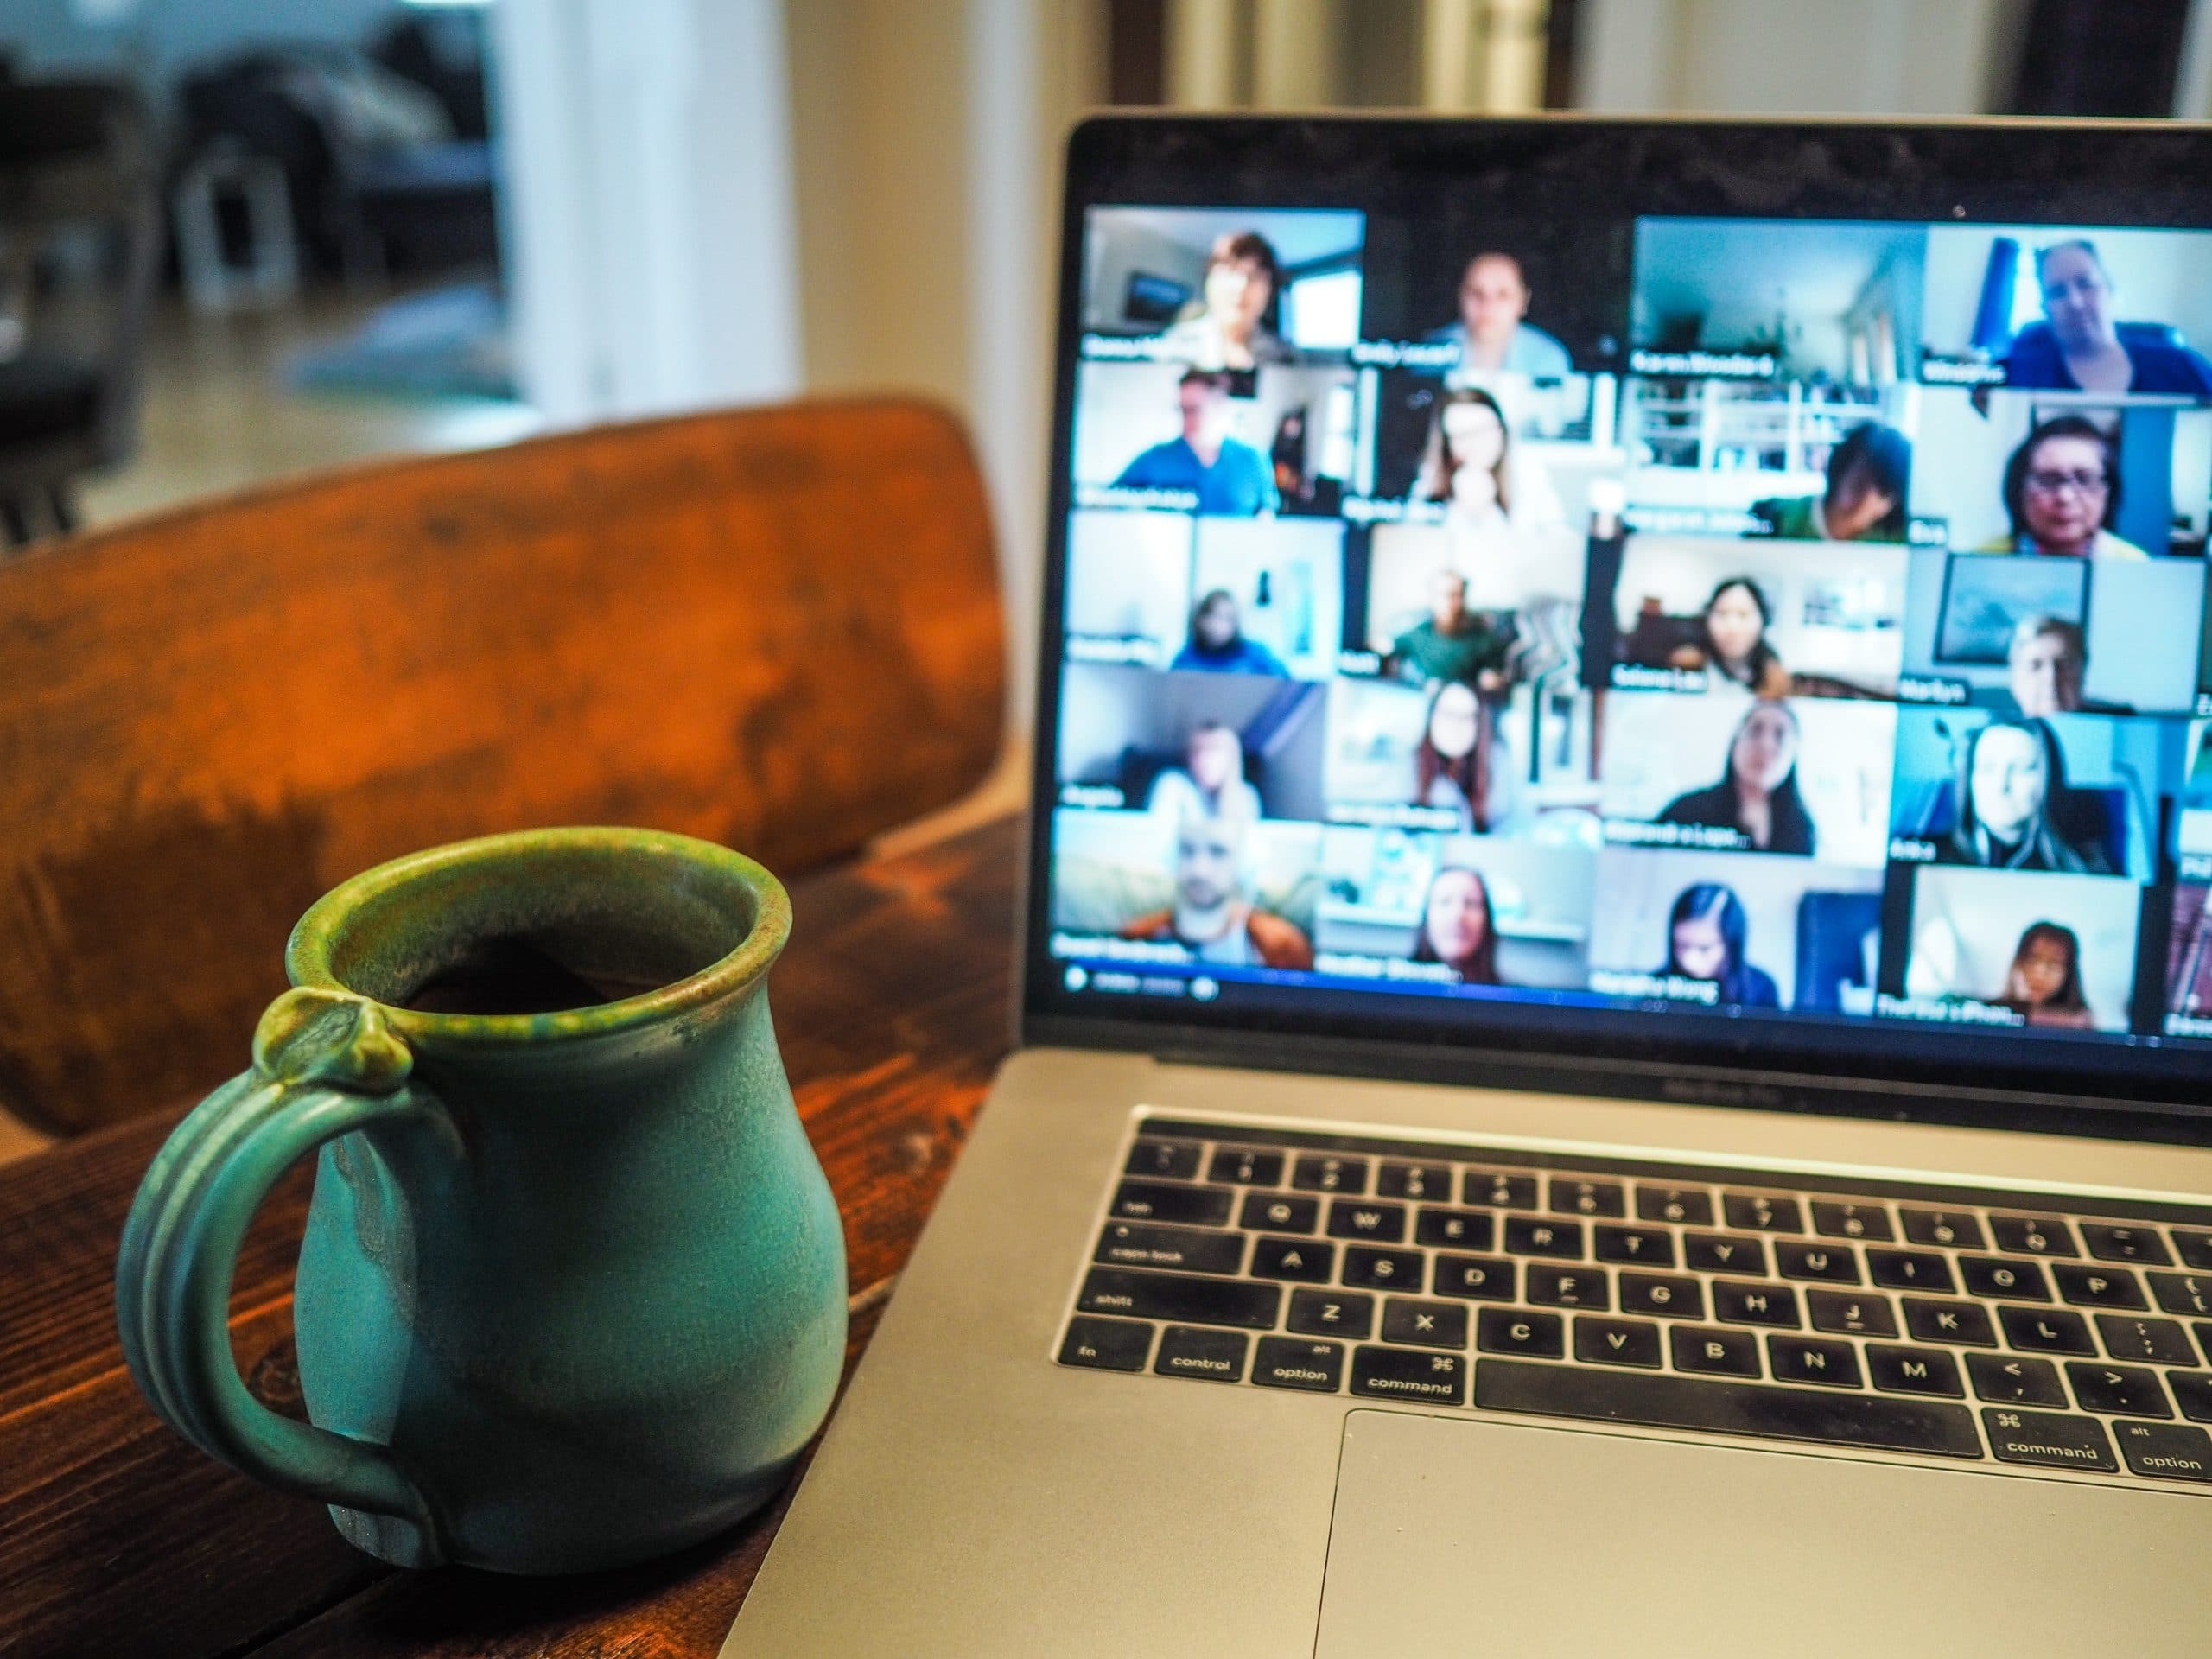 How Has This Pandemic Changed the Way We Work From Home Image